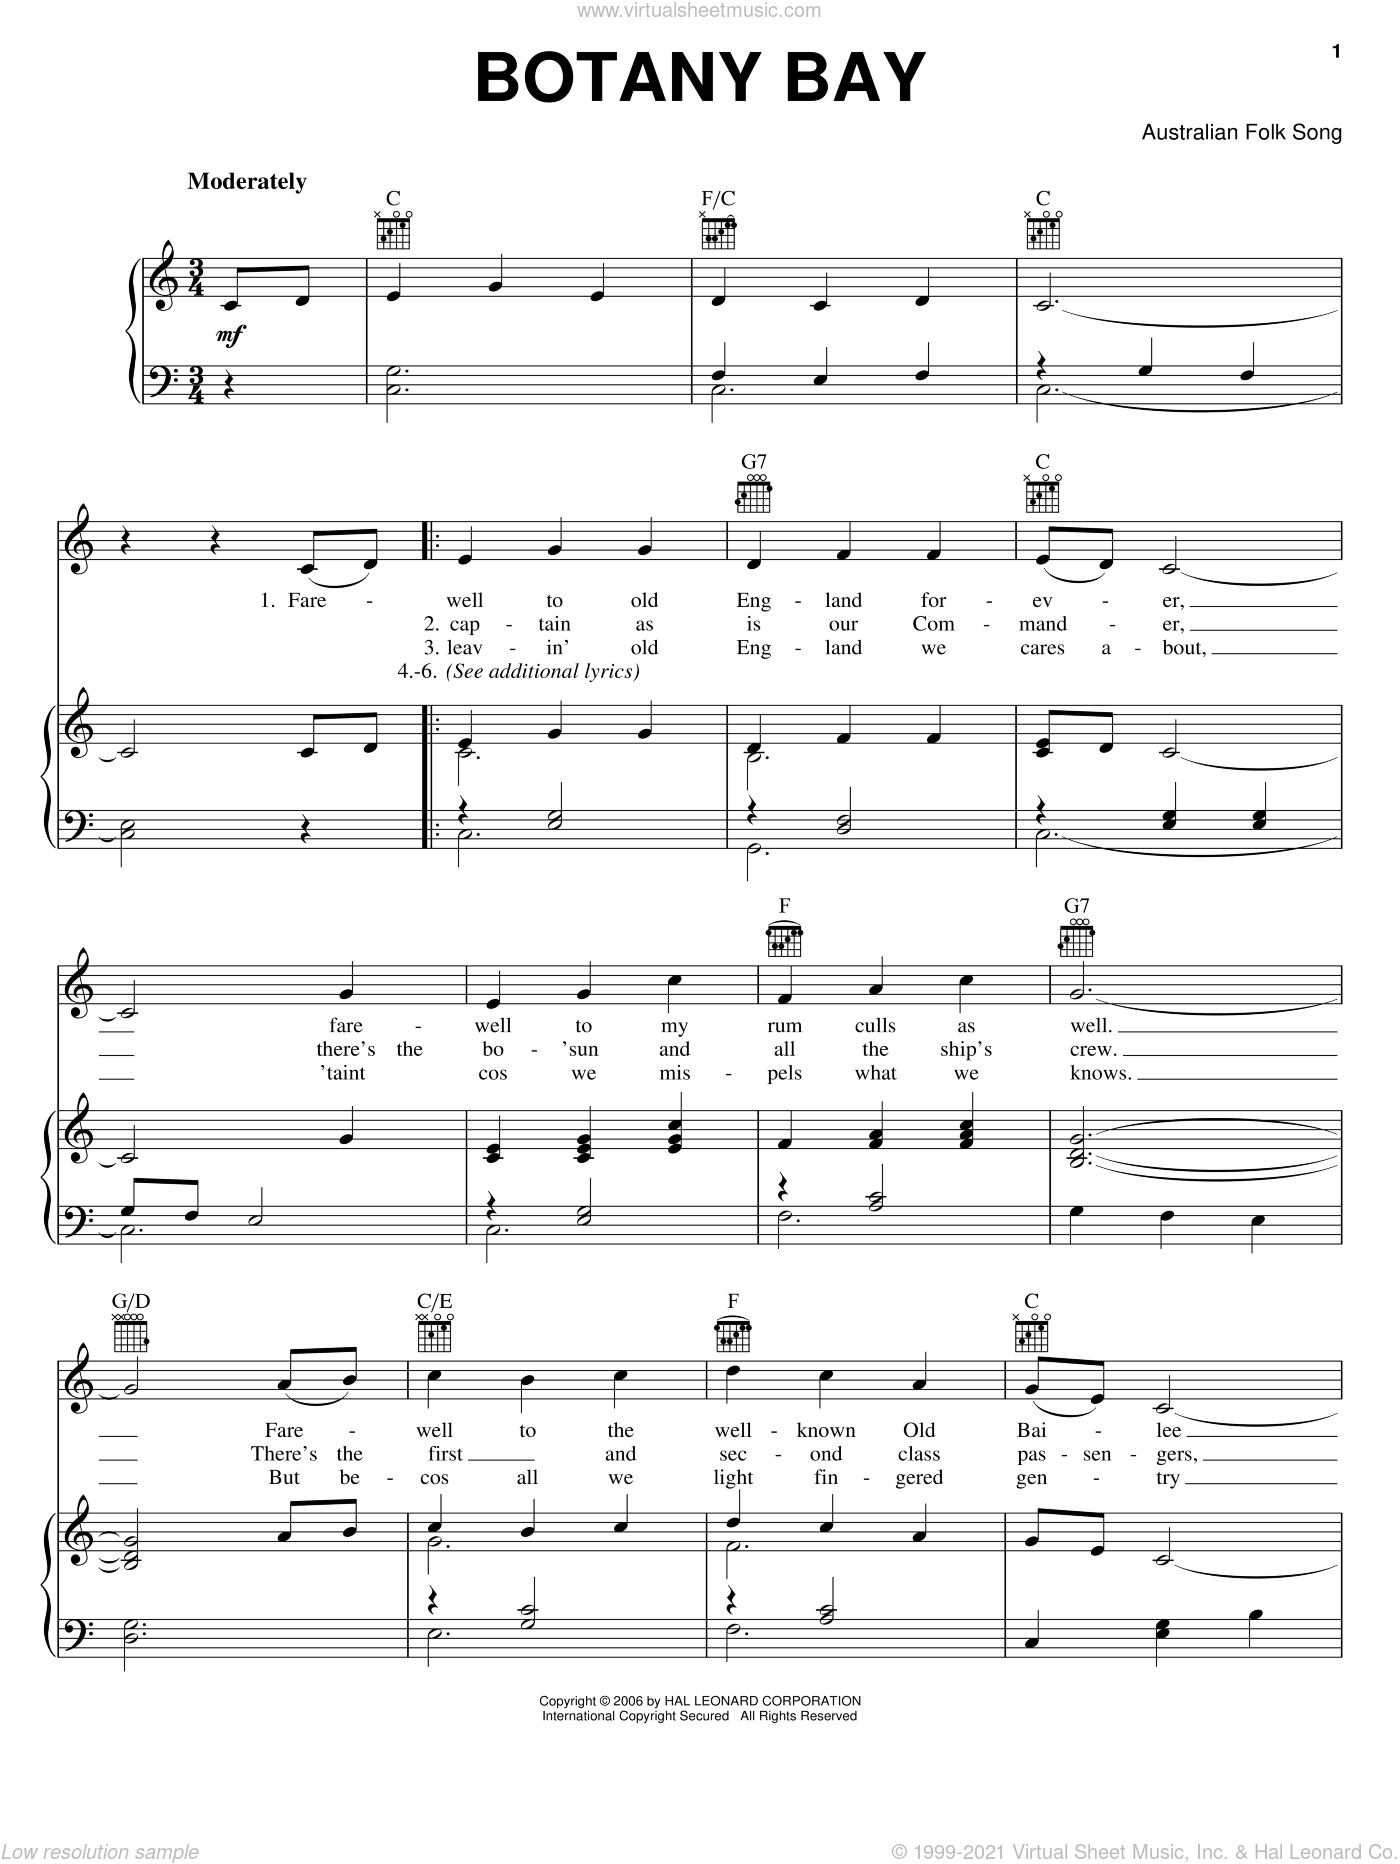 Botany Bay sheet music for voice, piano or guitar. Score Image Preview.